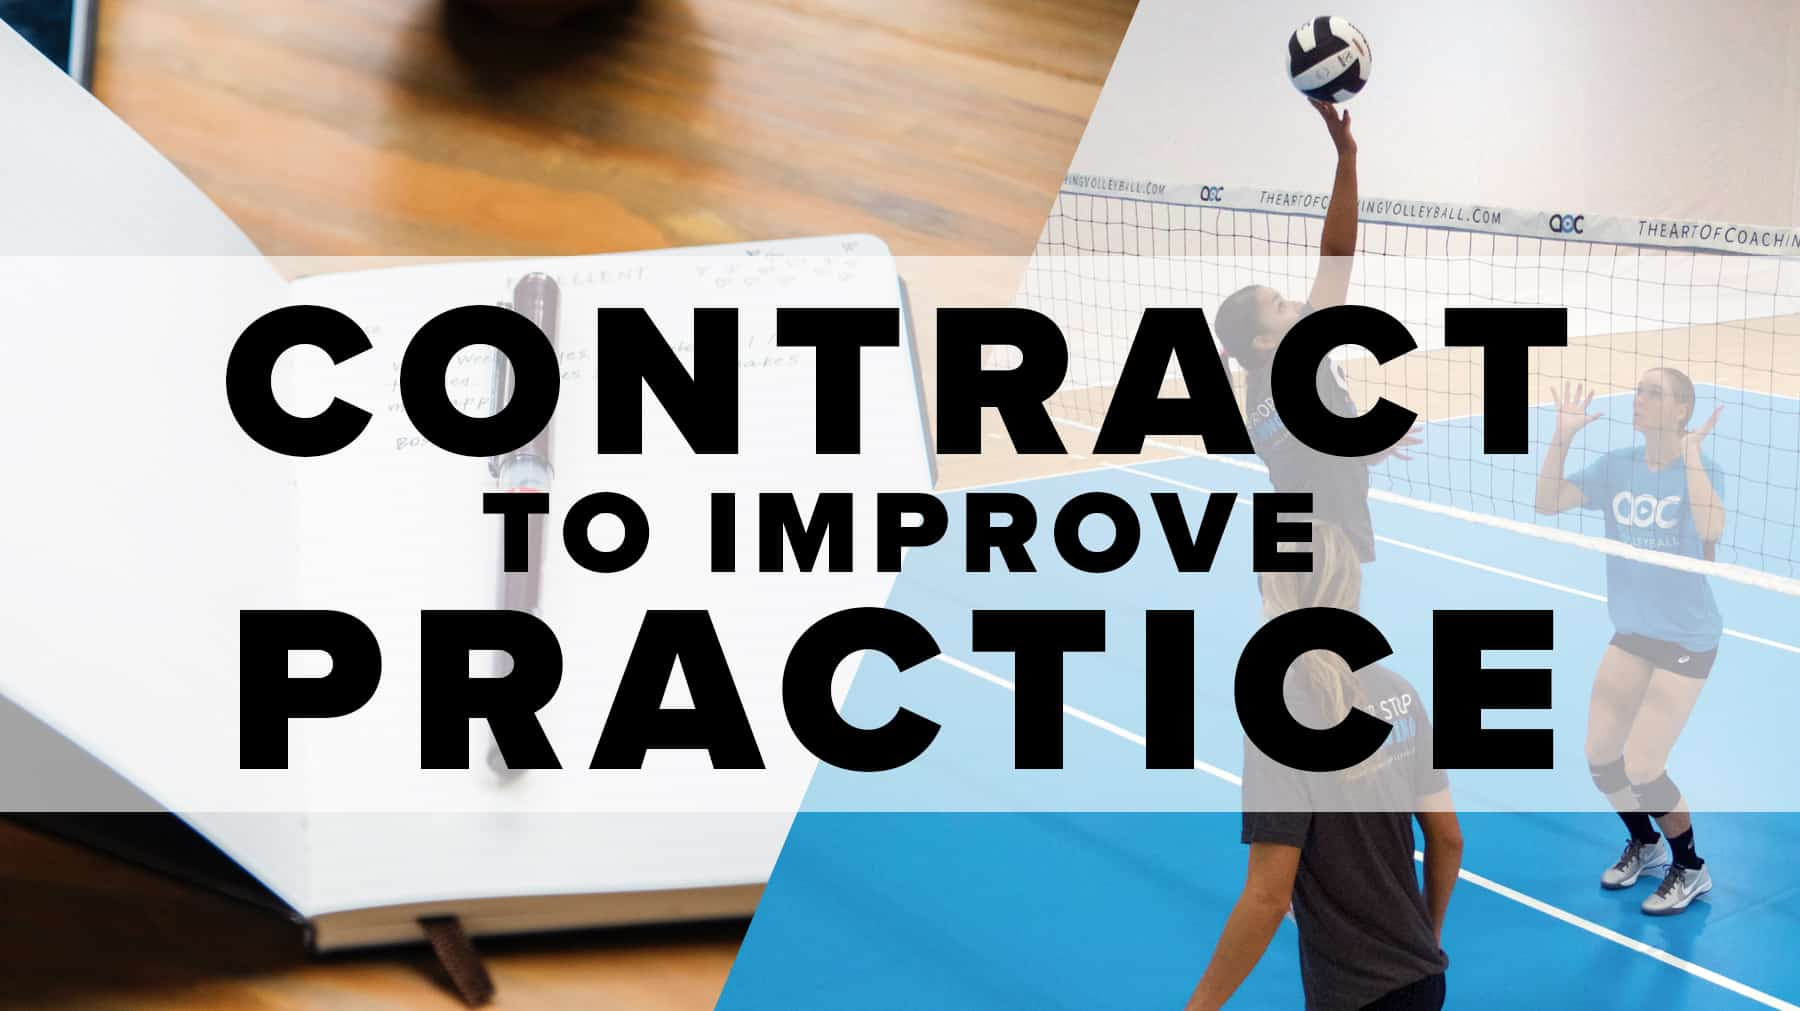 Contract to improve practice